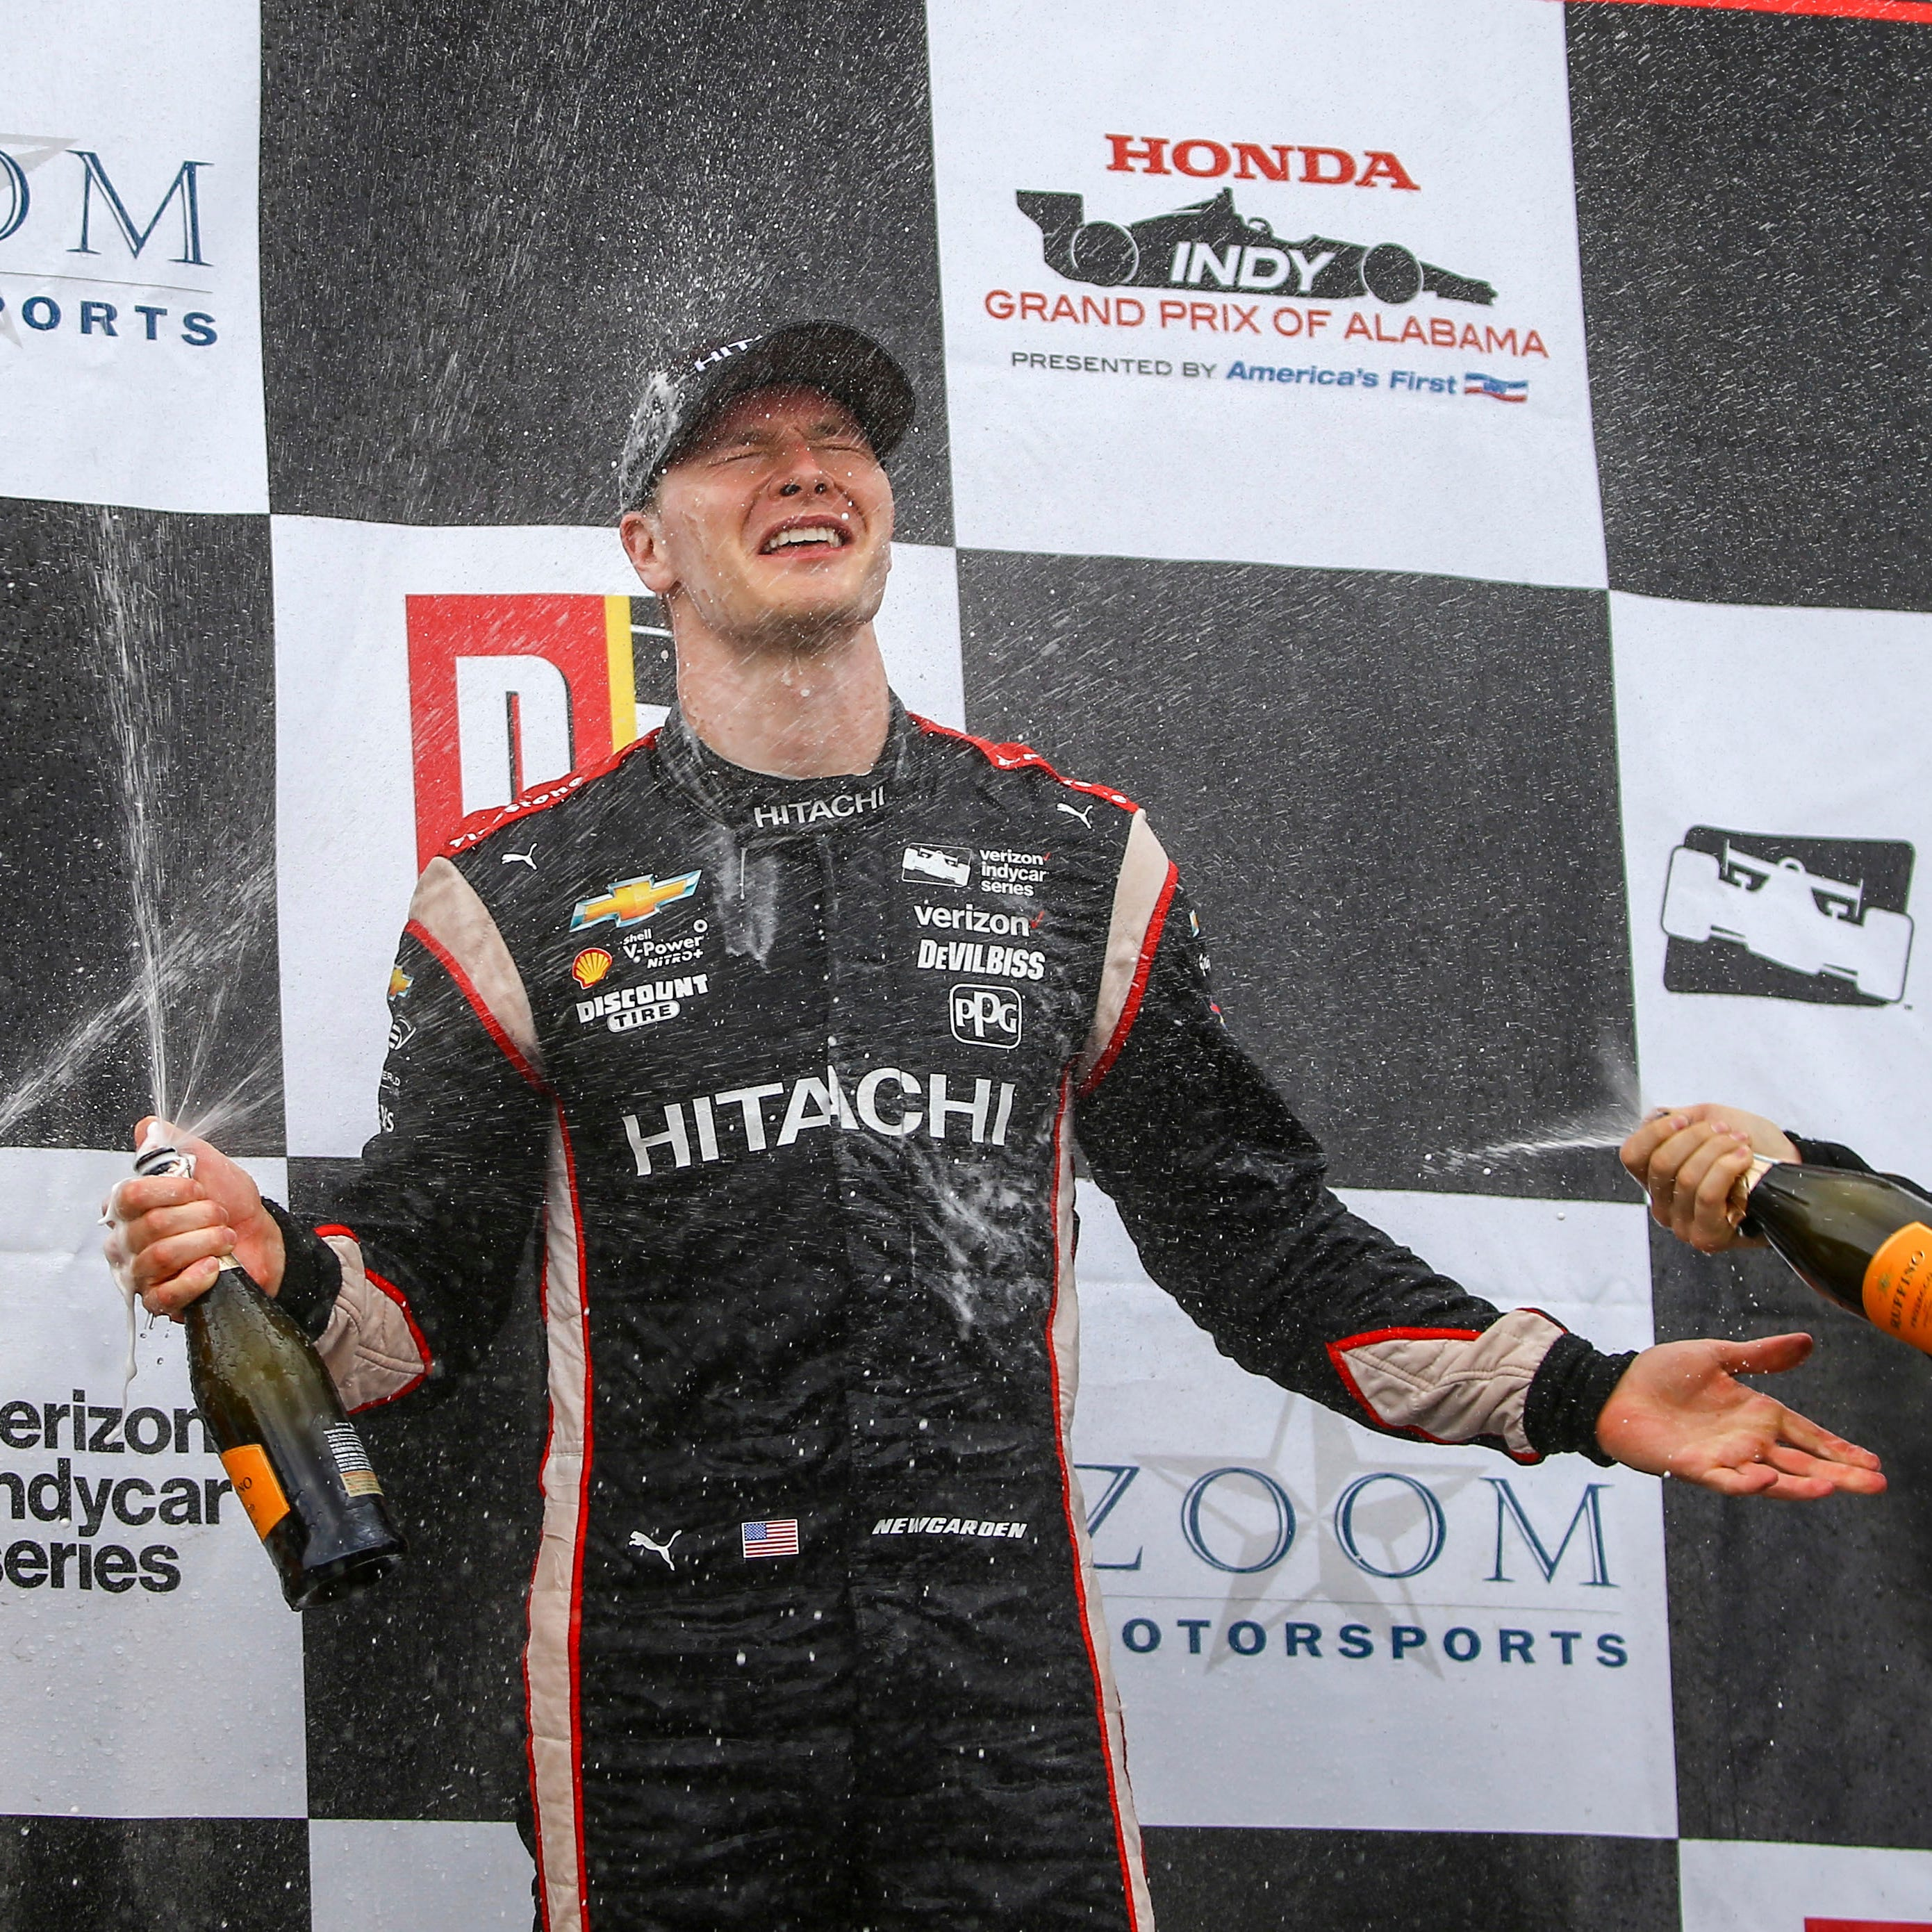 Second place Ryan Hunter-Reay, left, and third placed James Hinchcliffe, right, spray champagne on winner Josef Newgarden after the Honda Indy Grand Prix of Alabama auto race at Barber Motorsports Park, April 23, 2018, in Birmingham, Ala.